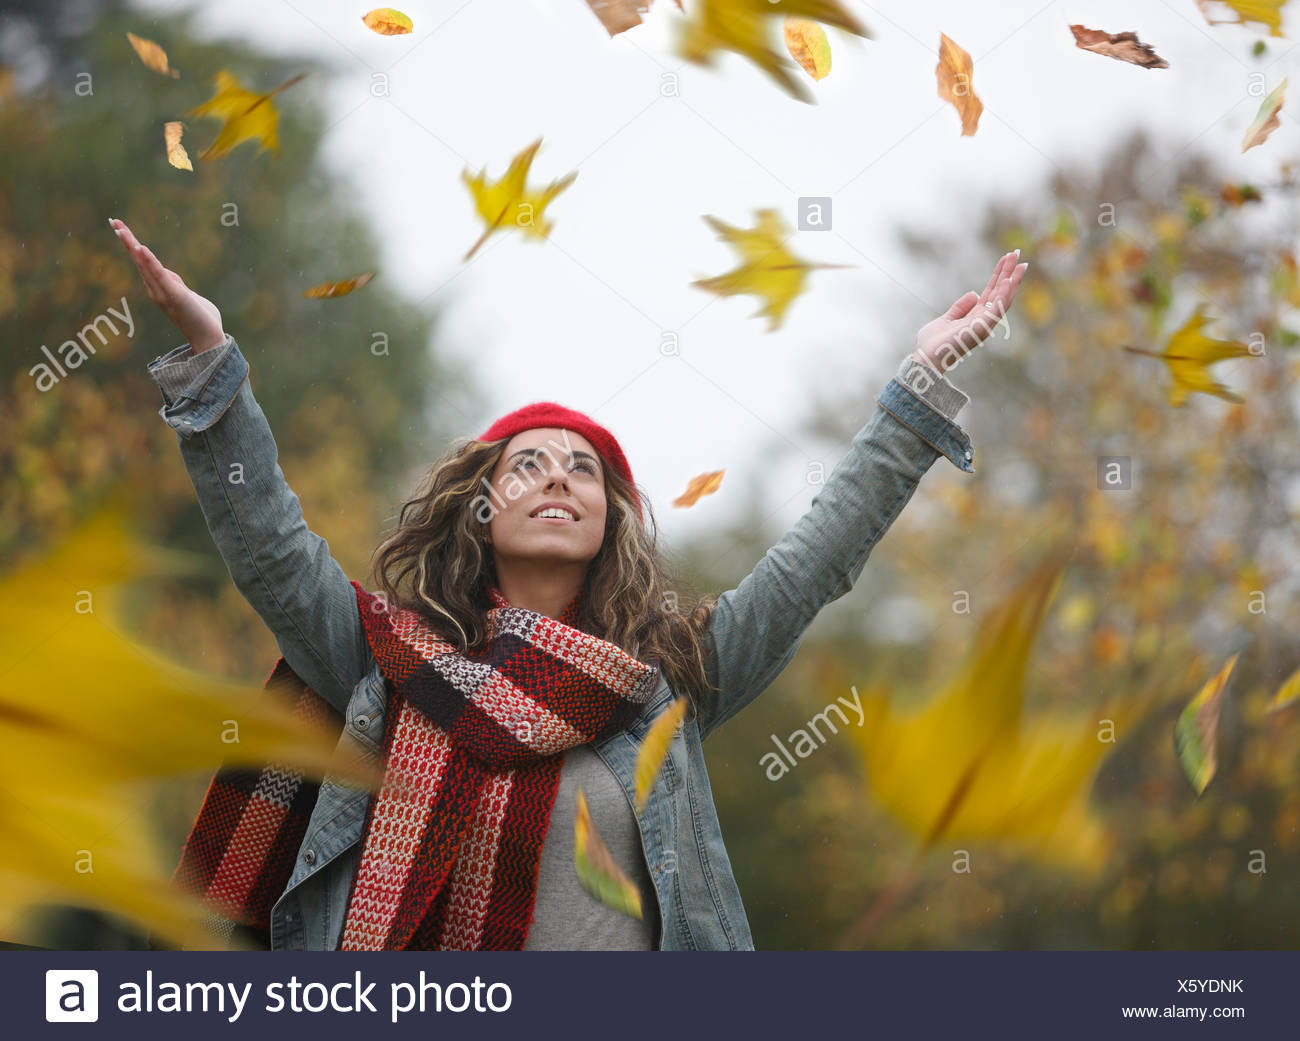 Woman throwing dried leaves into air - Stock Image